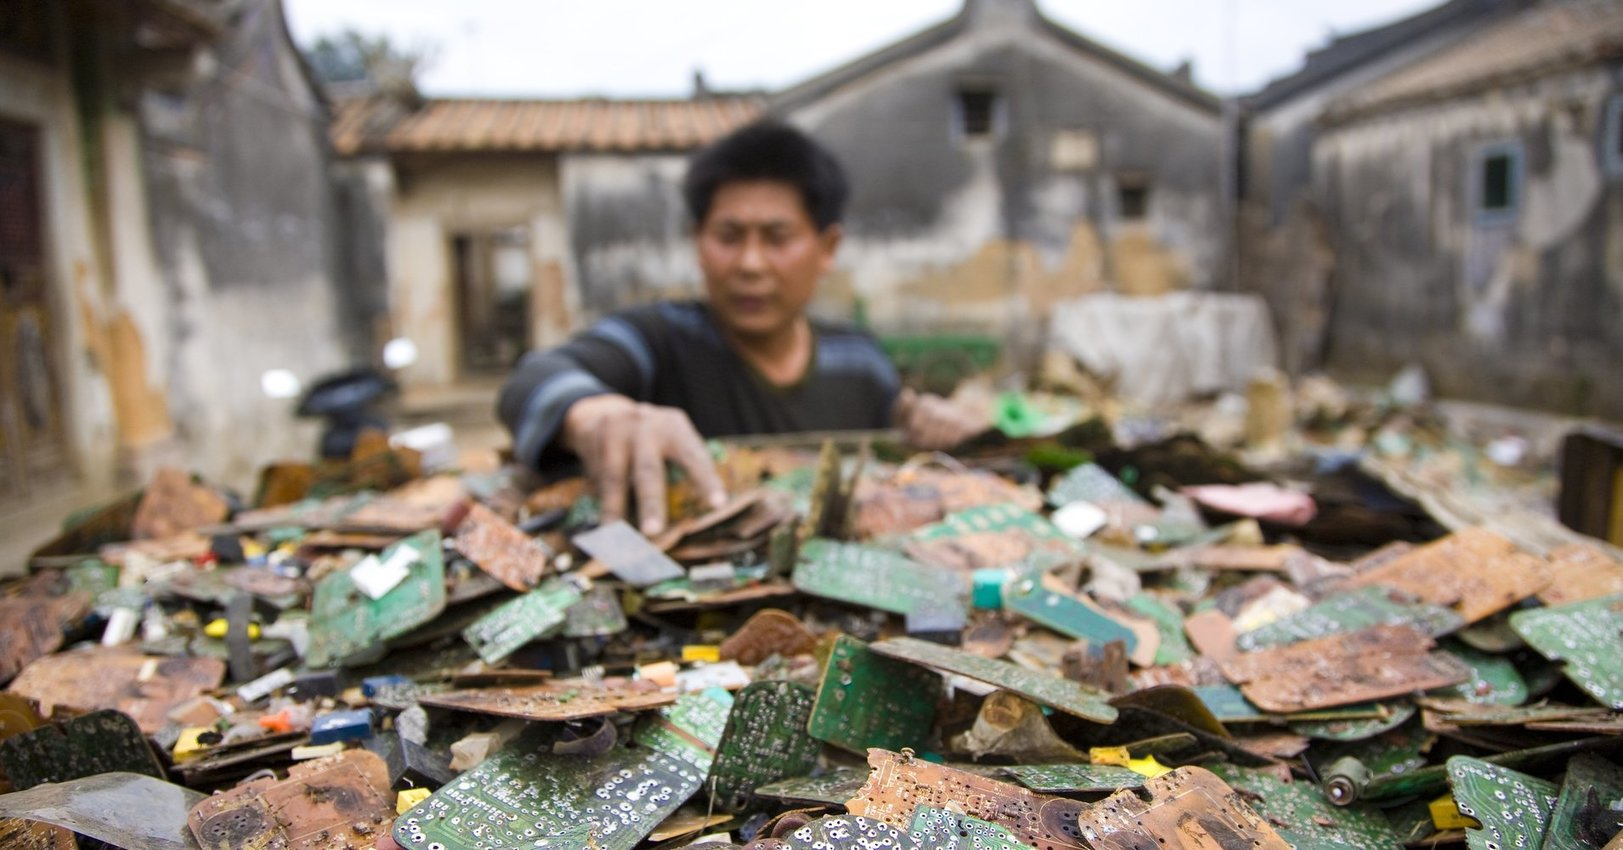 , So You Recycled Your Old Laptop. Here's Where It Might've Gone, The Circular Economy, The Circular Economy